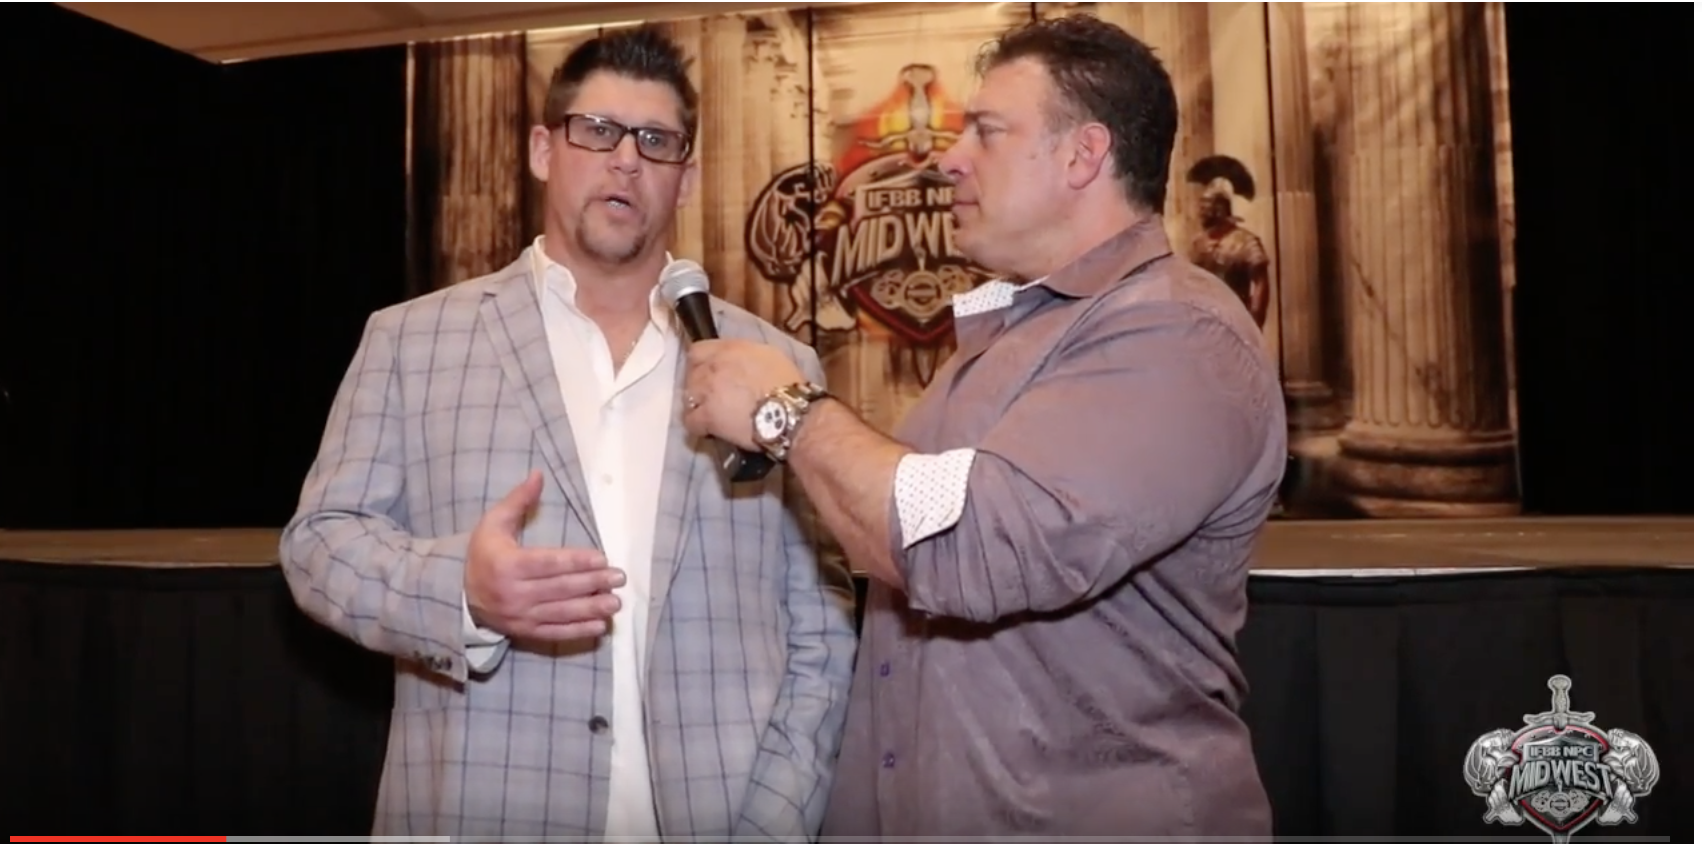 2018 IFBB 1st Phorm St.Louis Pro: Jack Titone Interviewed By Bob Cicherillo.